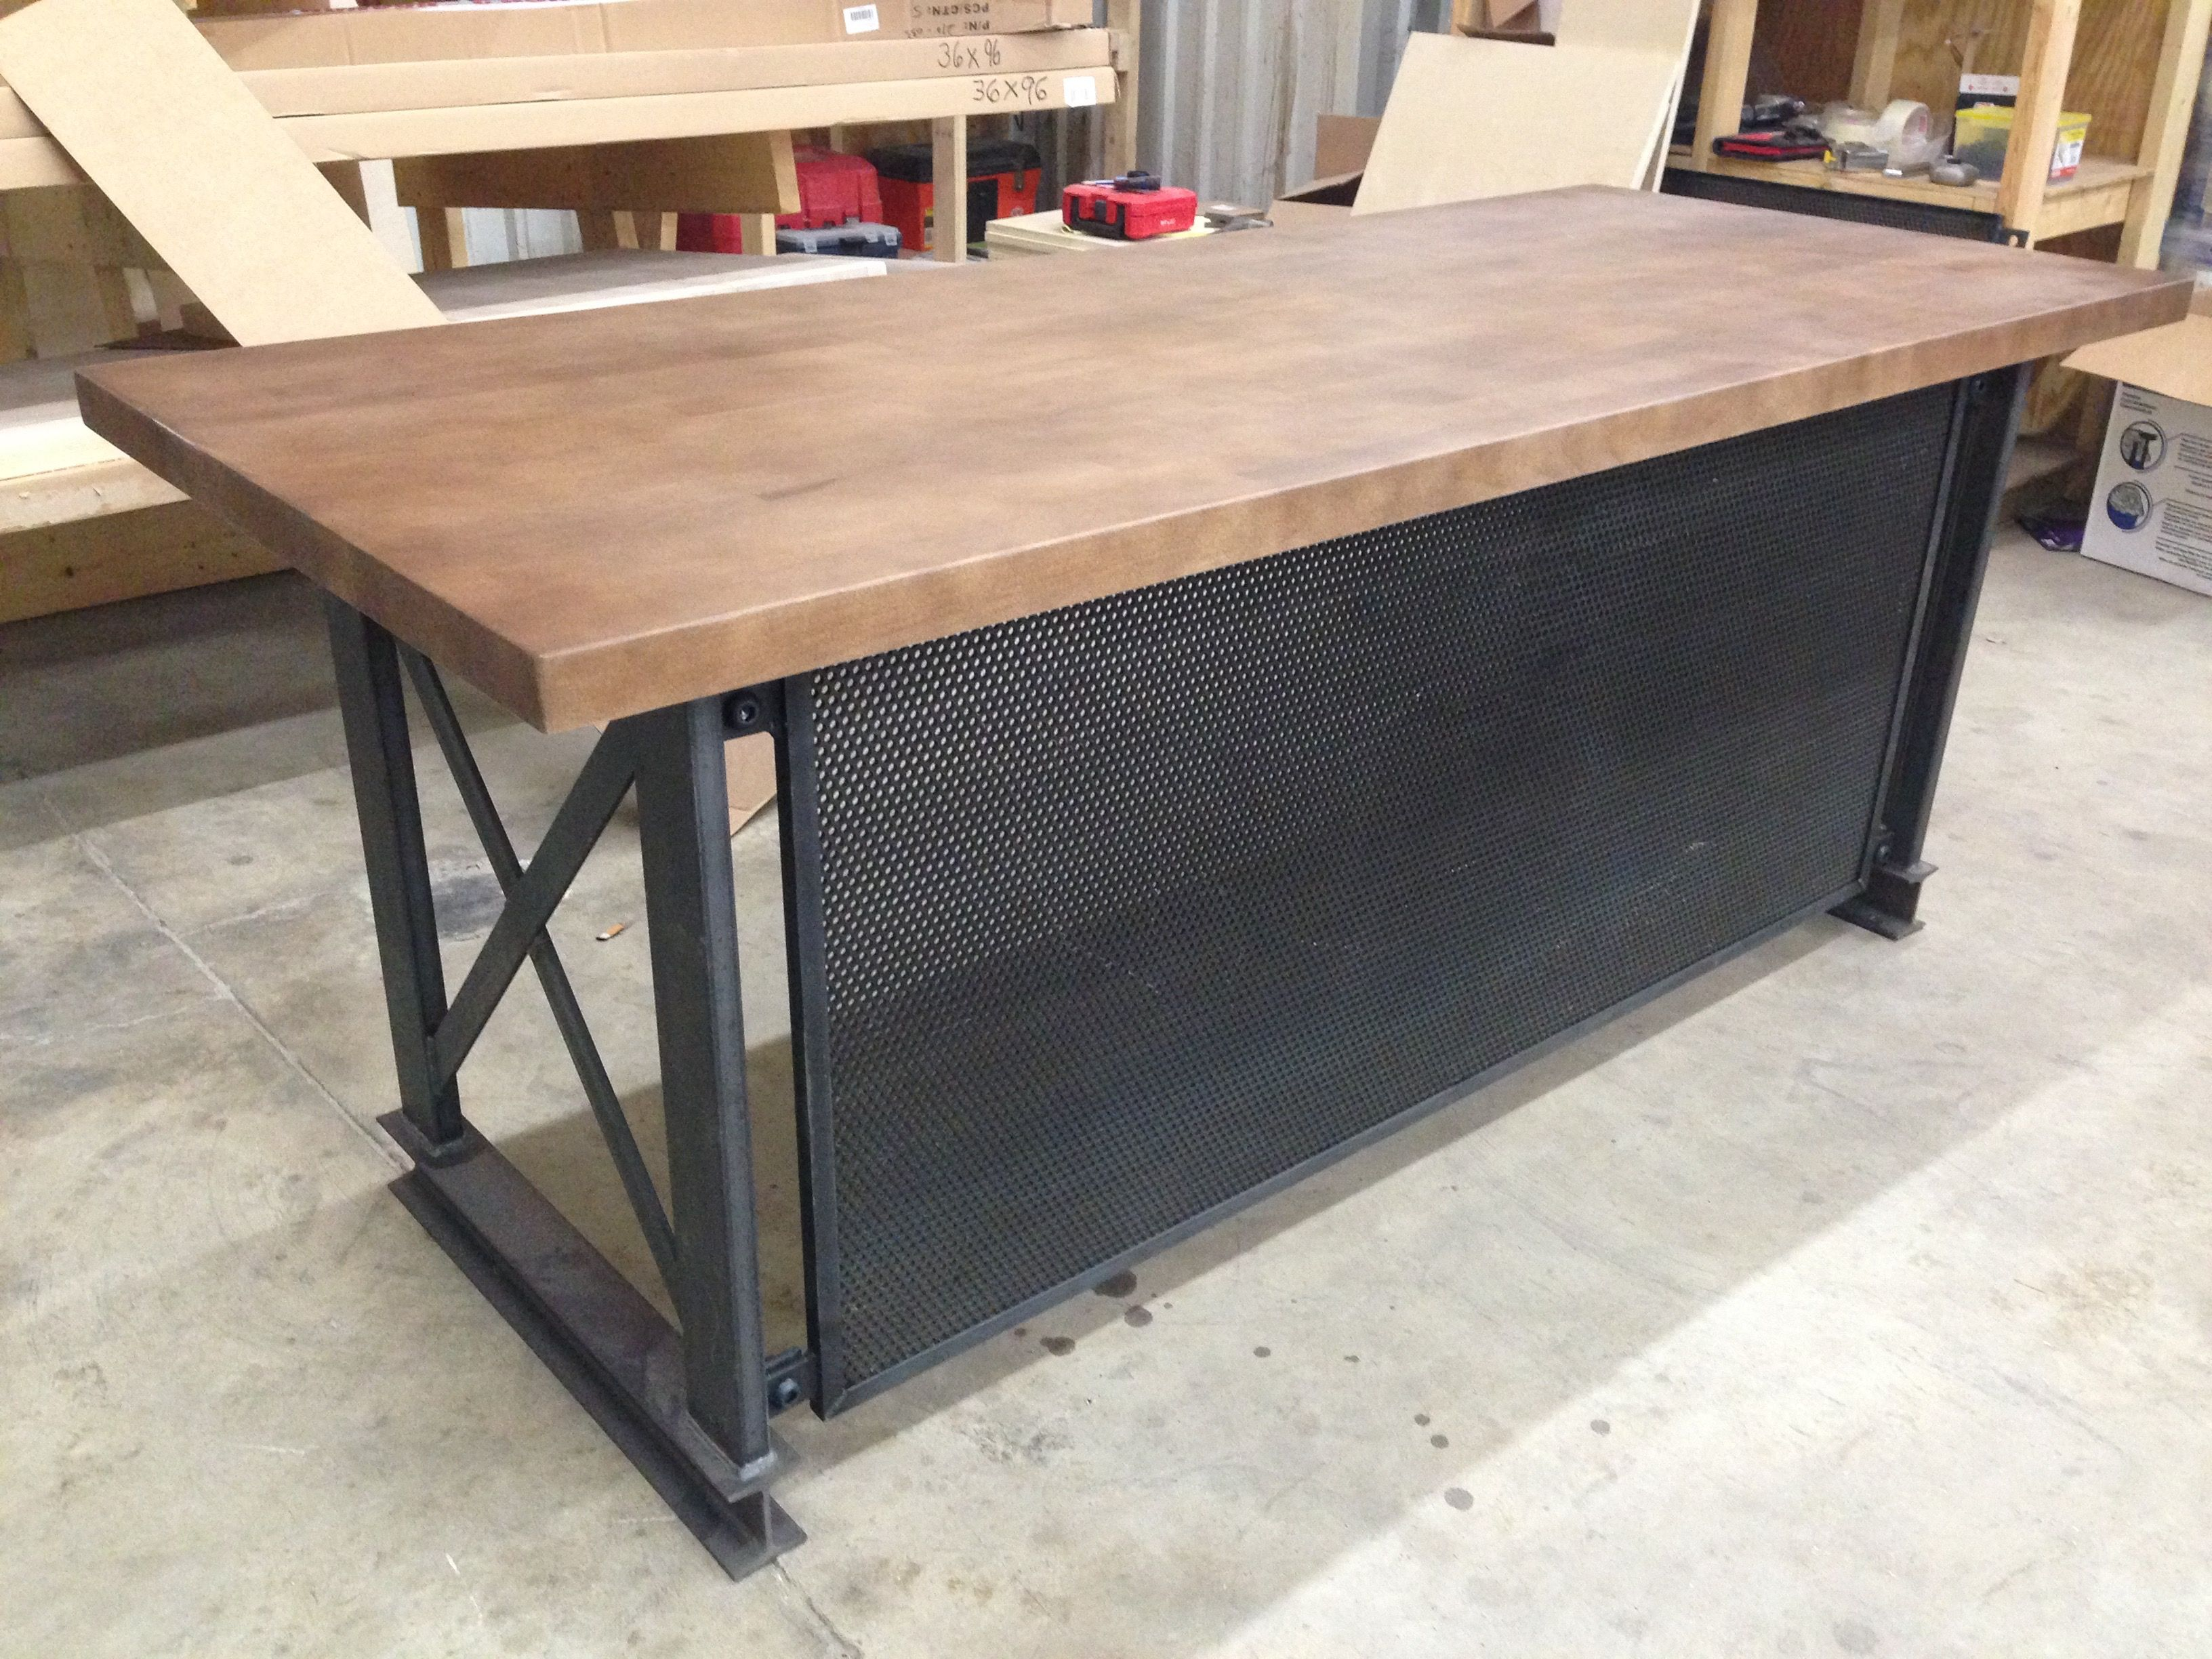 The Industrial Carruca Office Desk